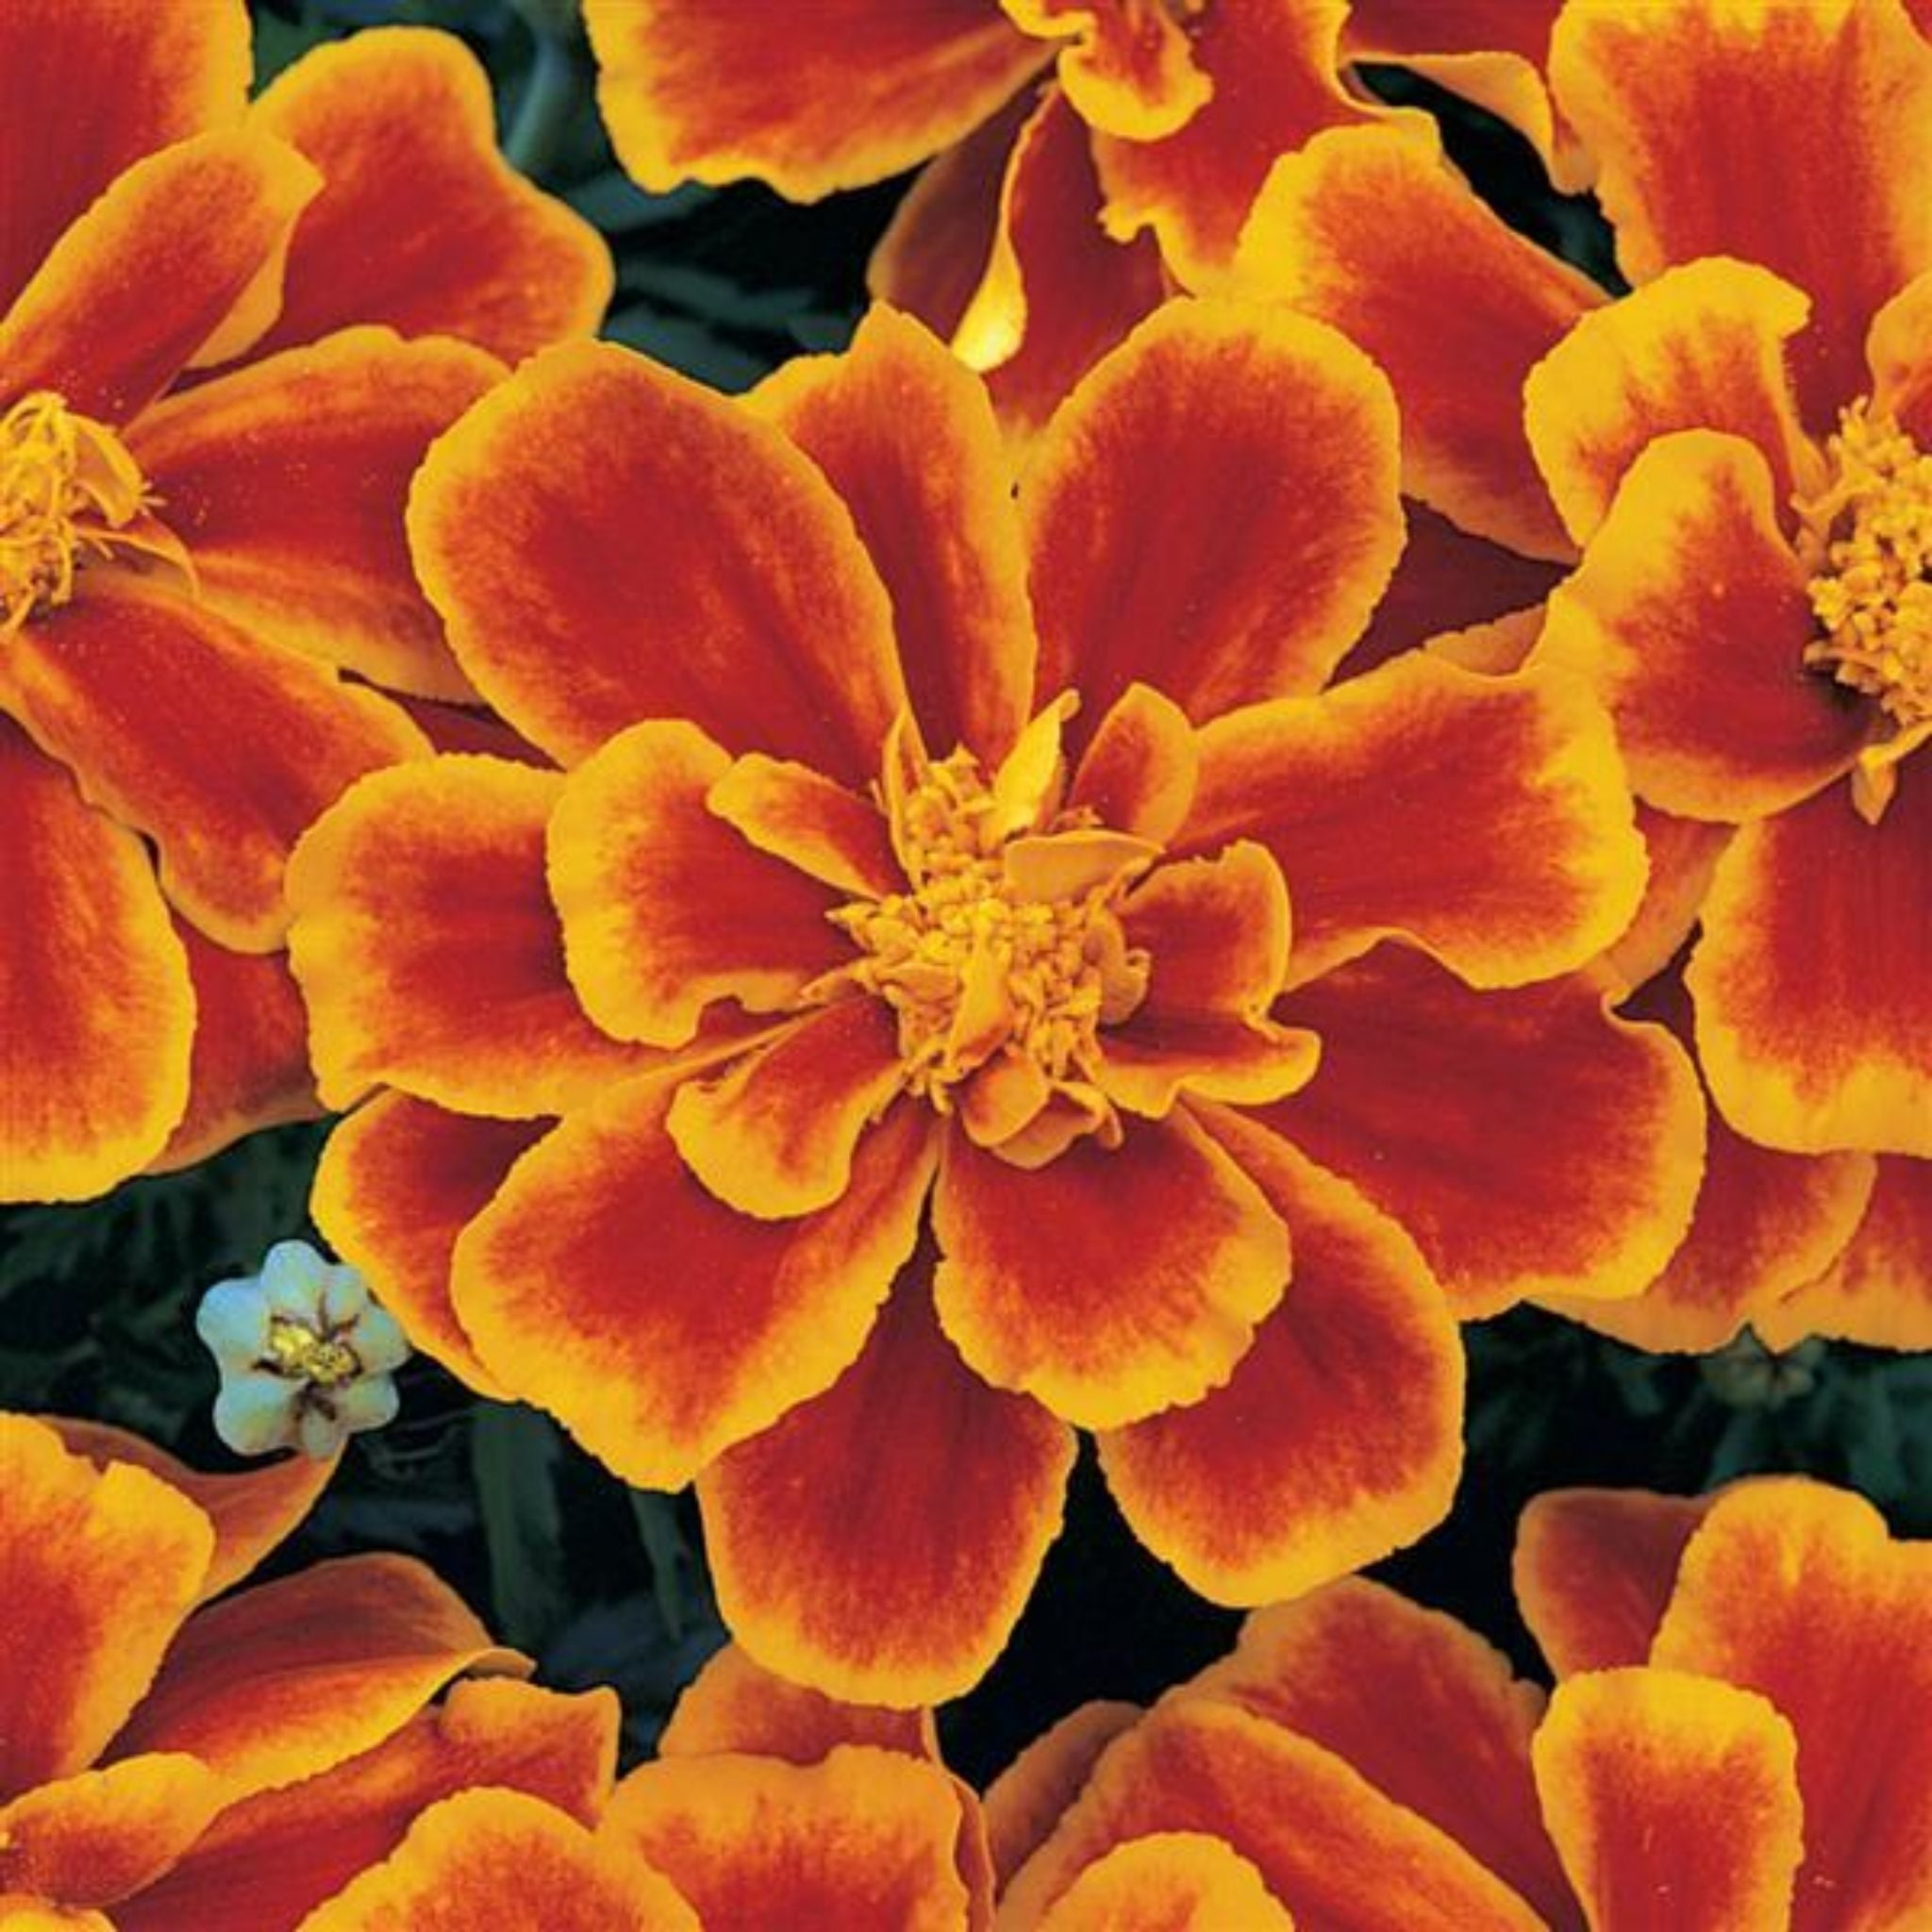 Marigold Flats for sale kollmans greenhouse twinsburg oh